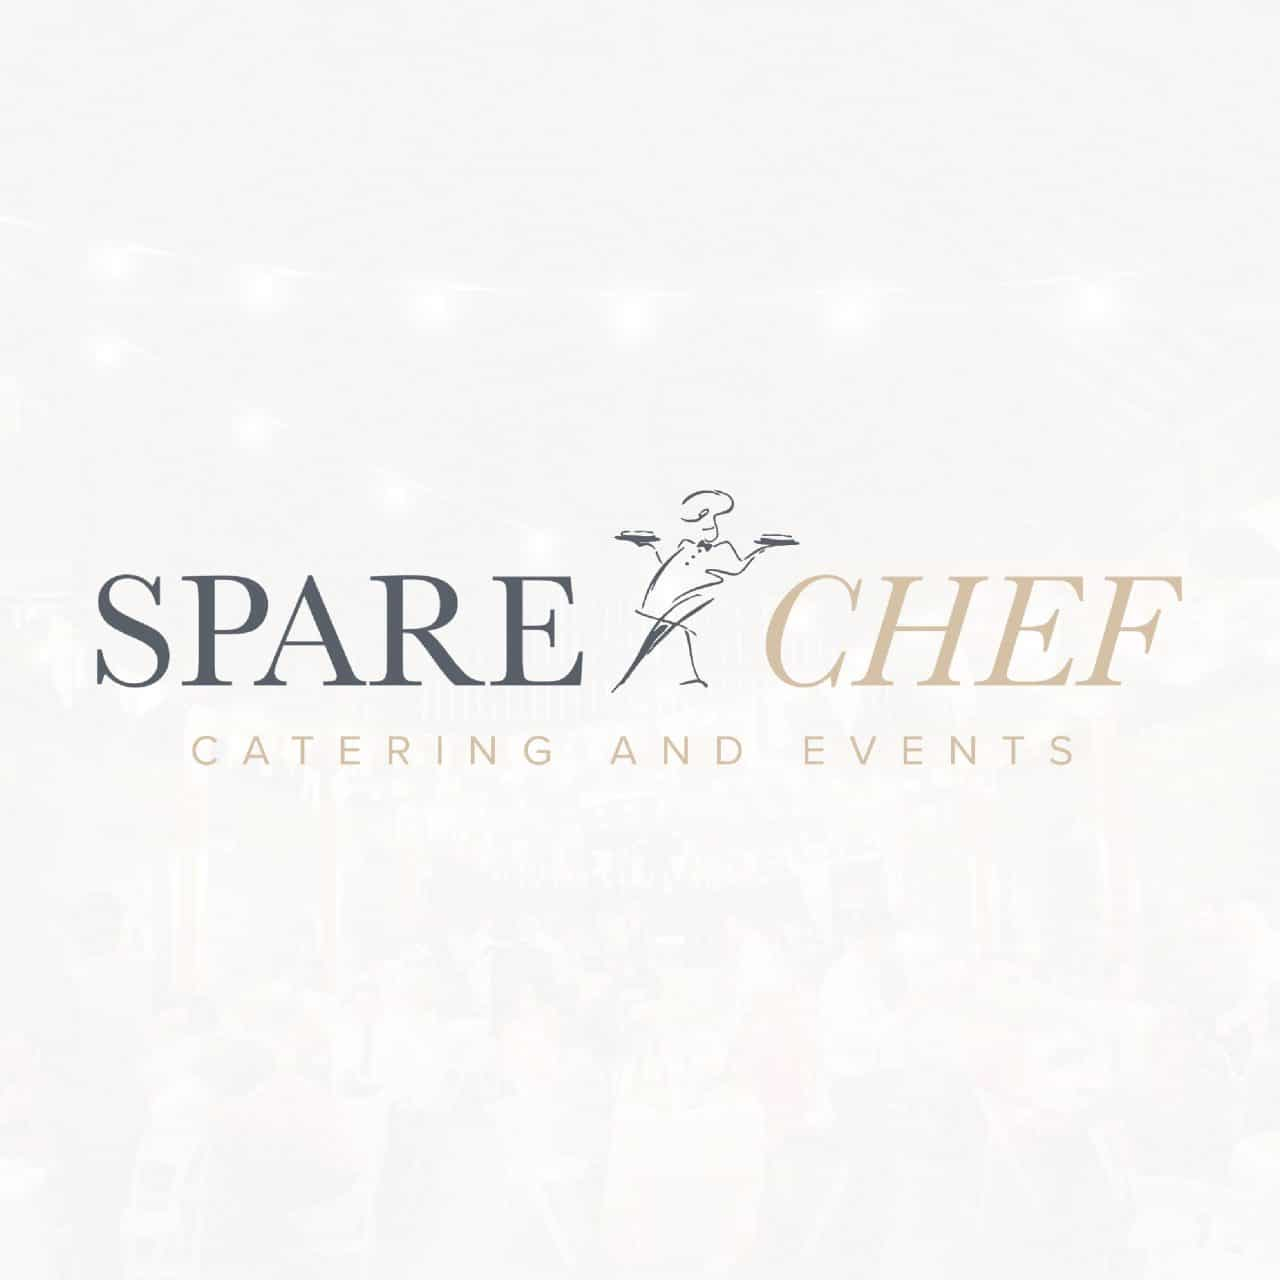 spare chef logo coffs